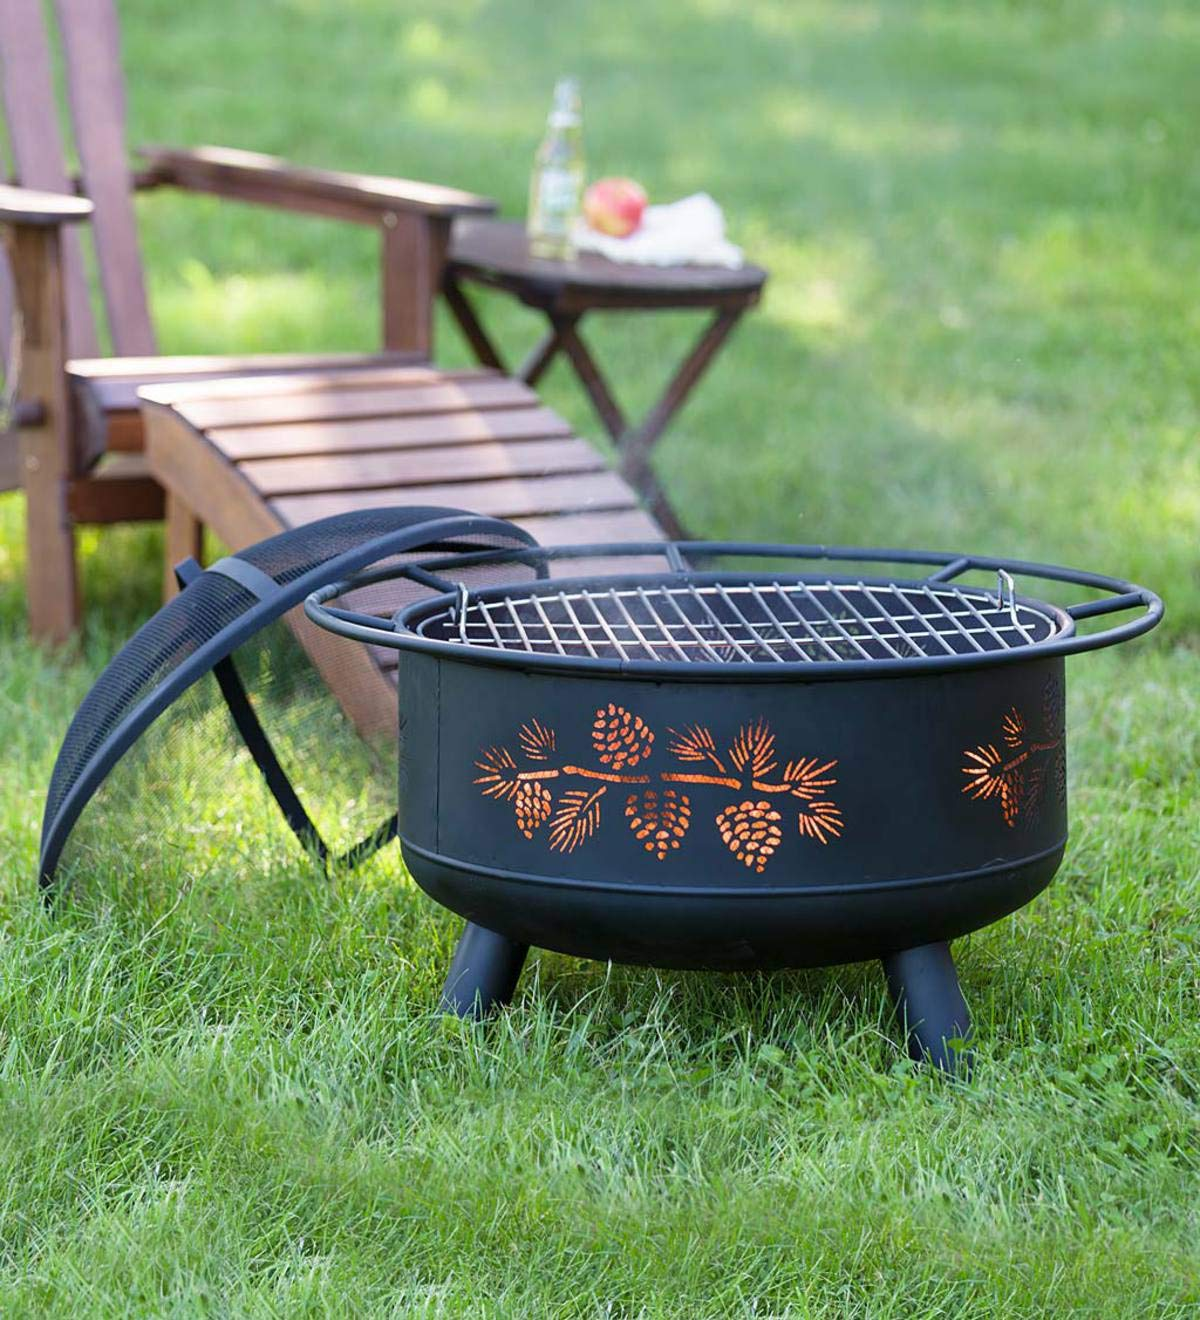 Pine Cone Wood Burning Fire Pit - 30'' Dia. x 23''H - Black Plow & Hearth